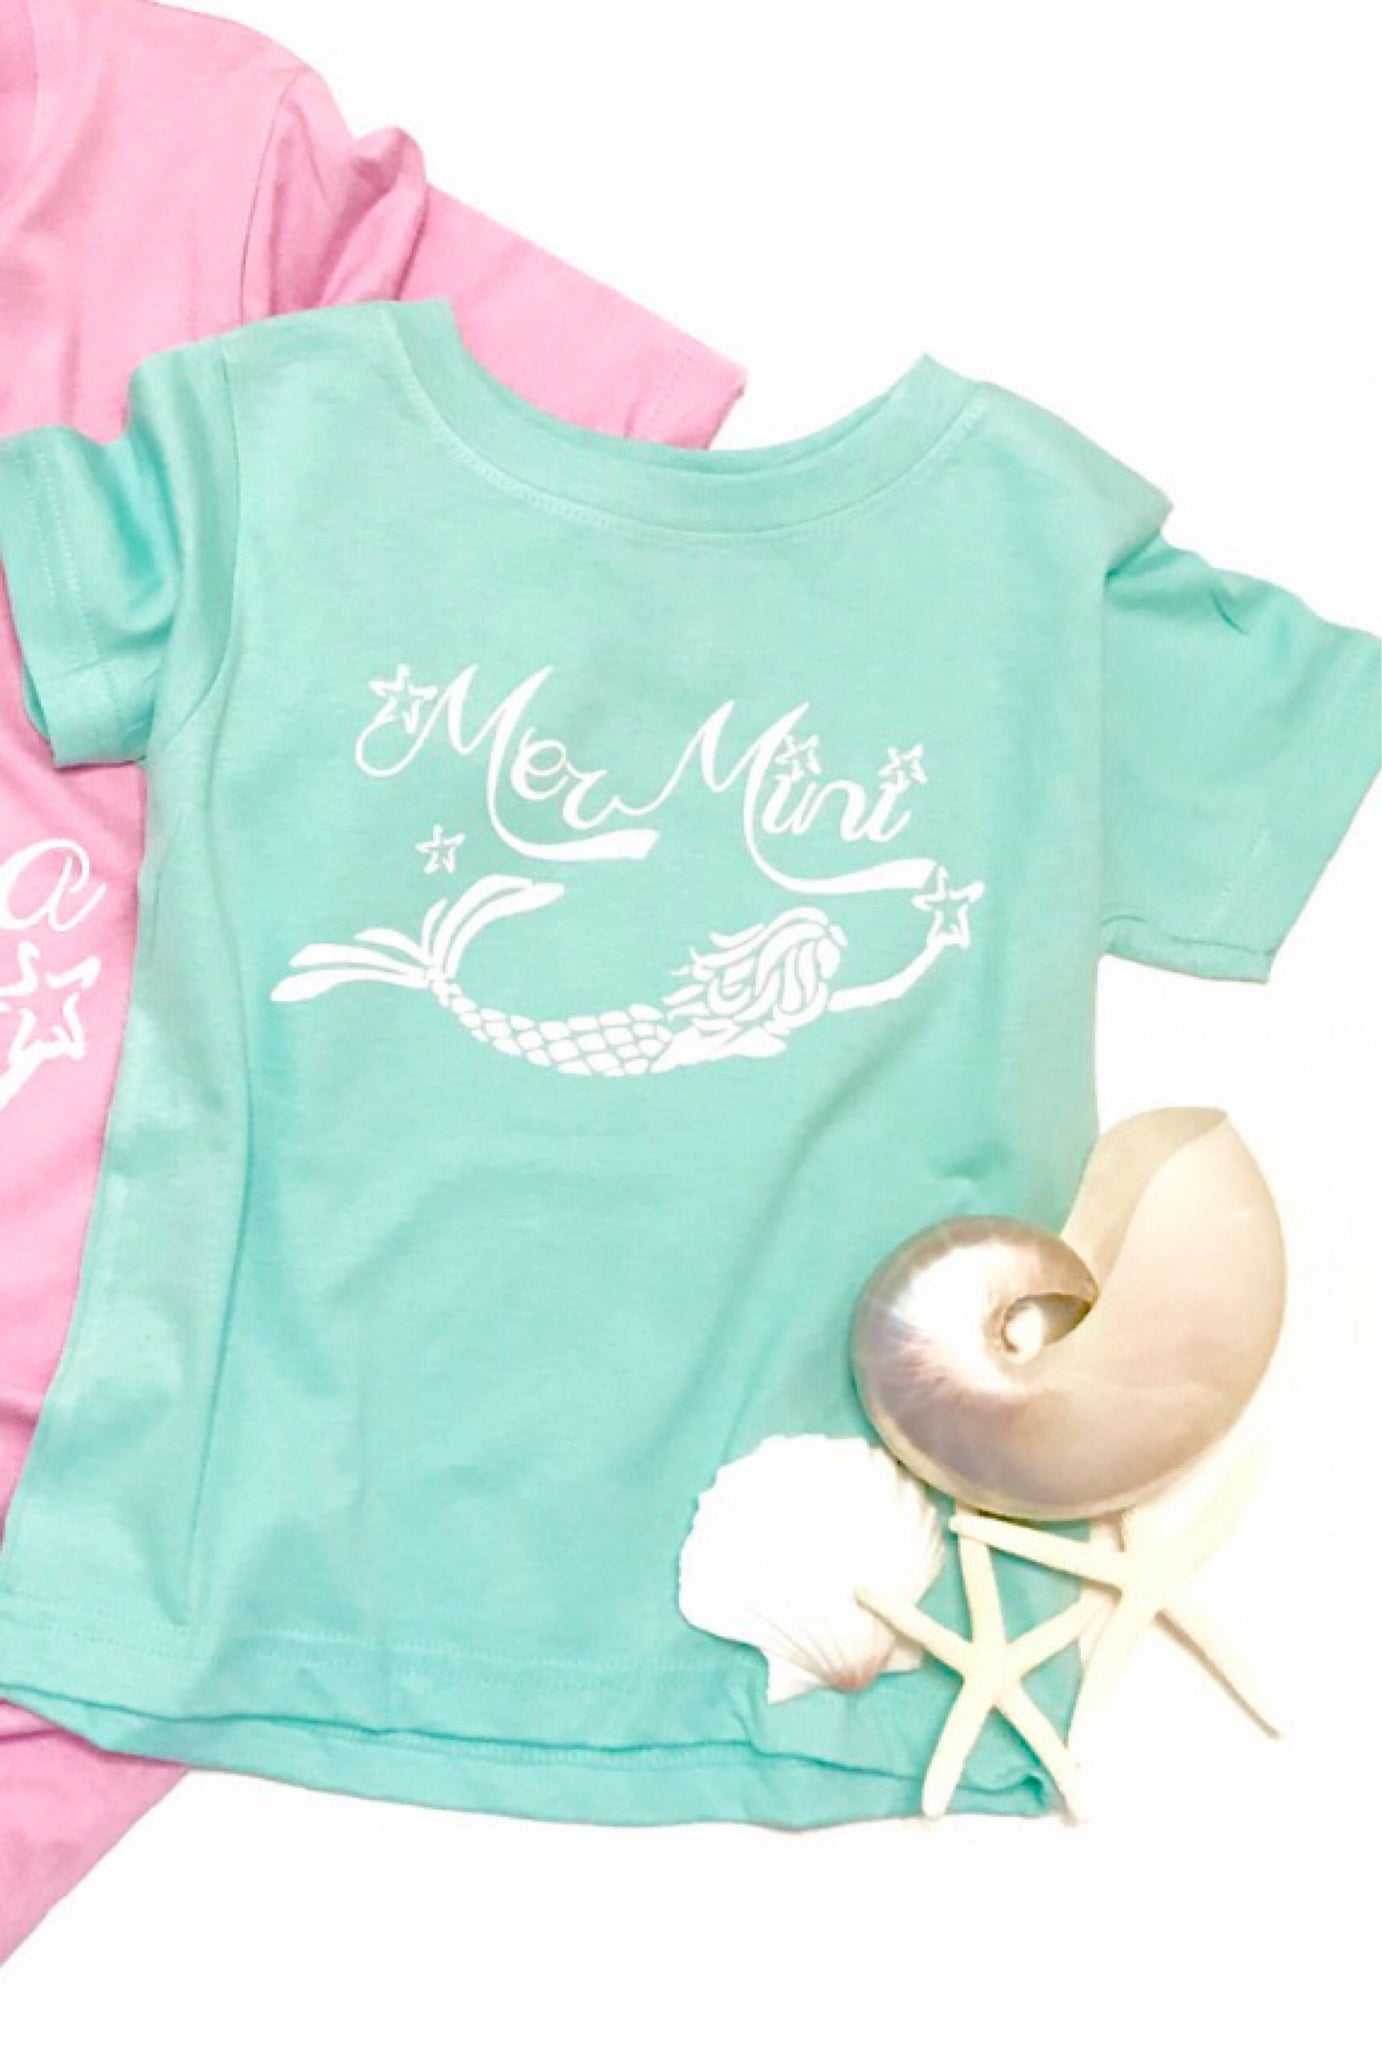 Mermaid Baby Shirt